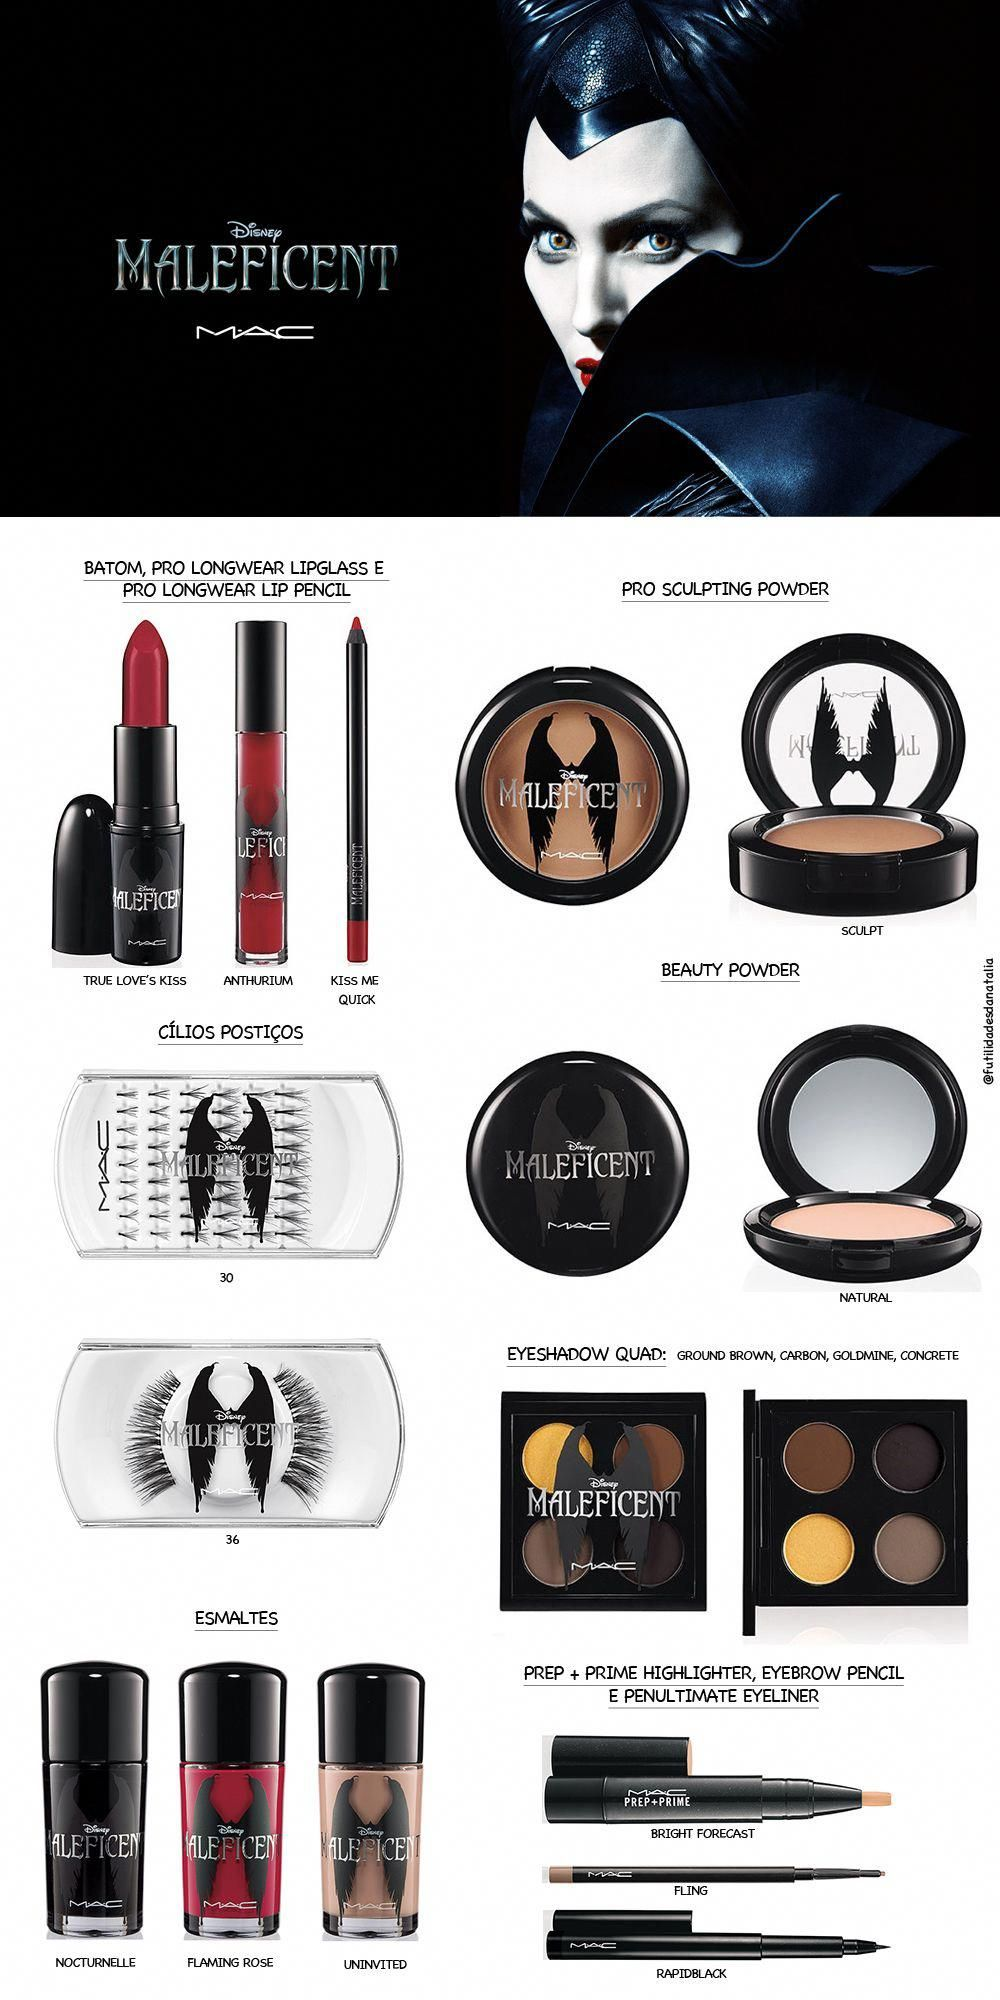 Slay the Ultimate Halloween Look with MAC's 'Maleficent